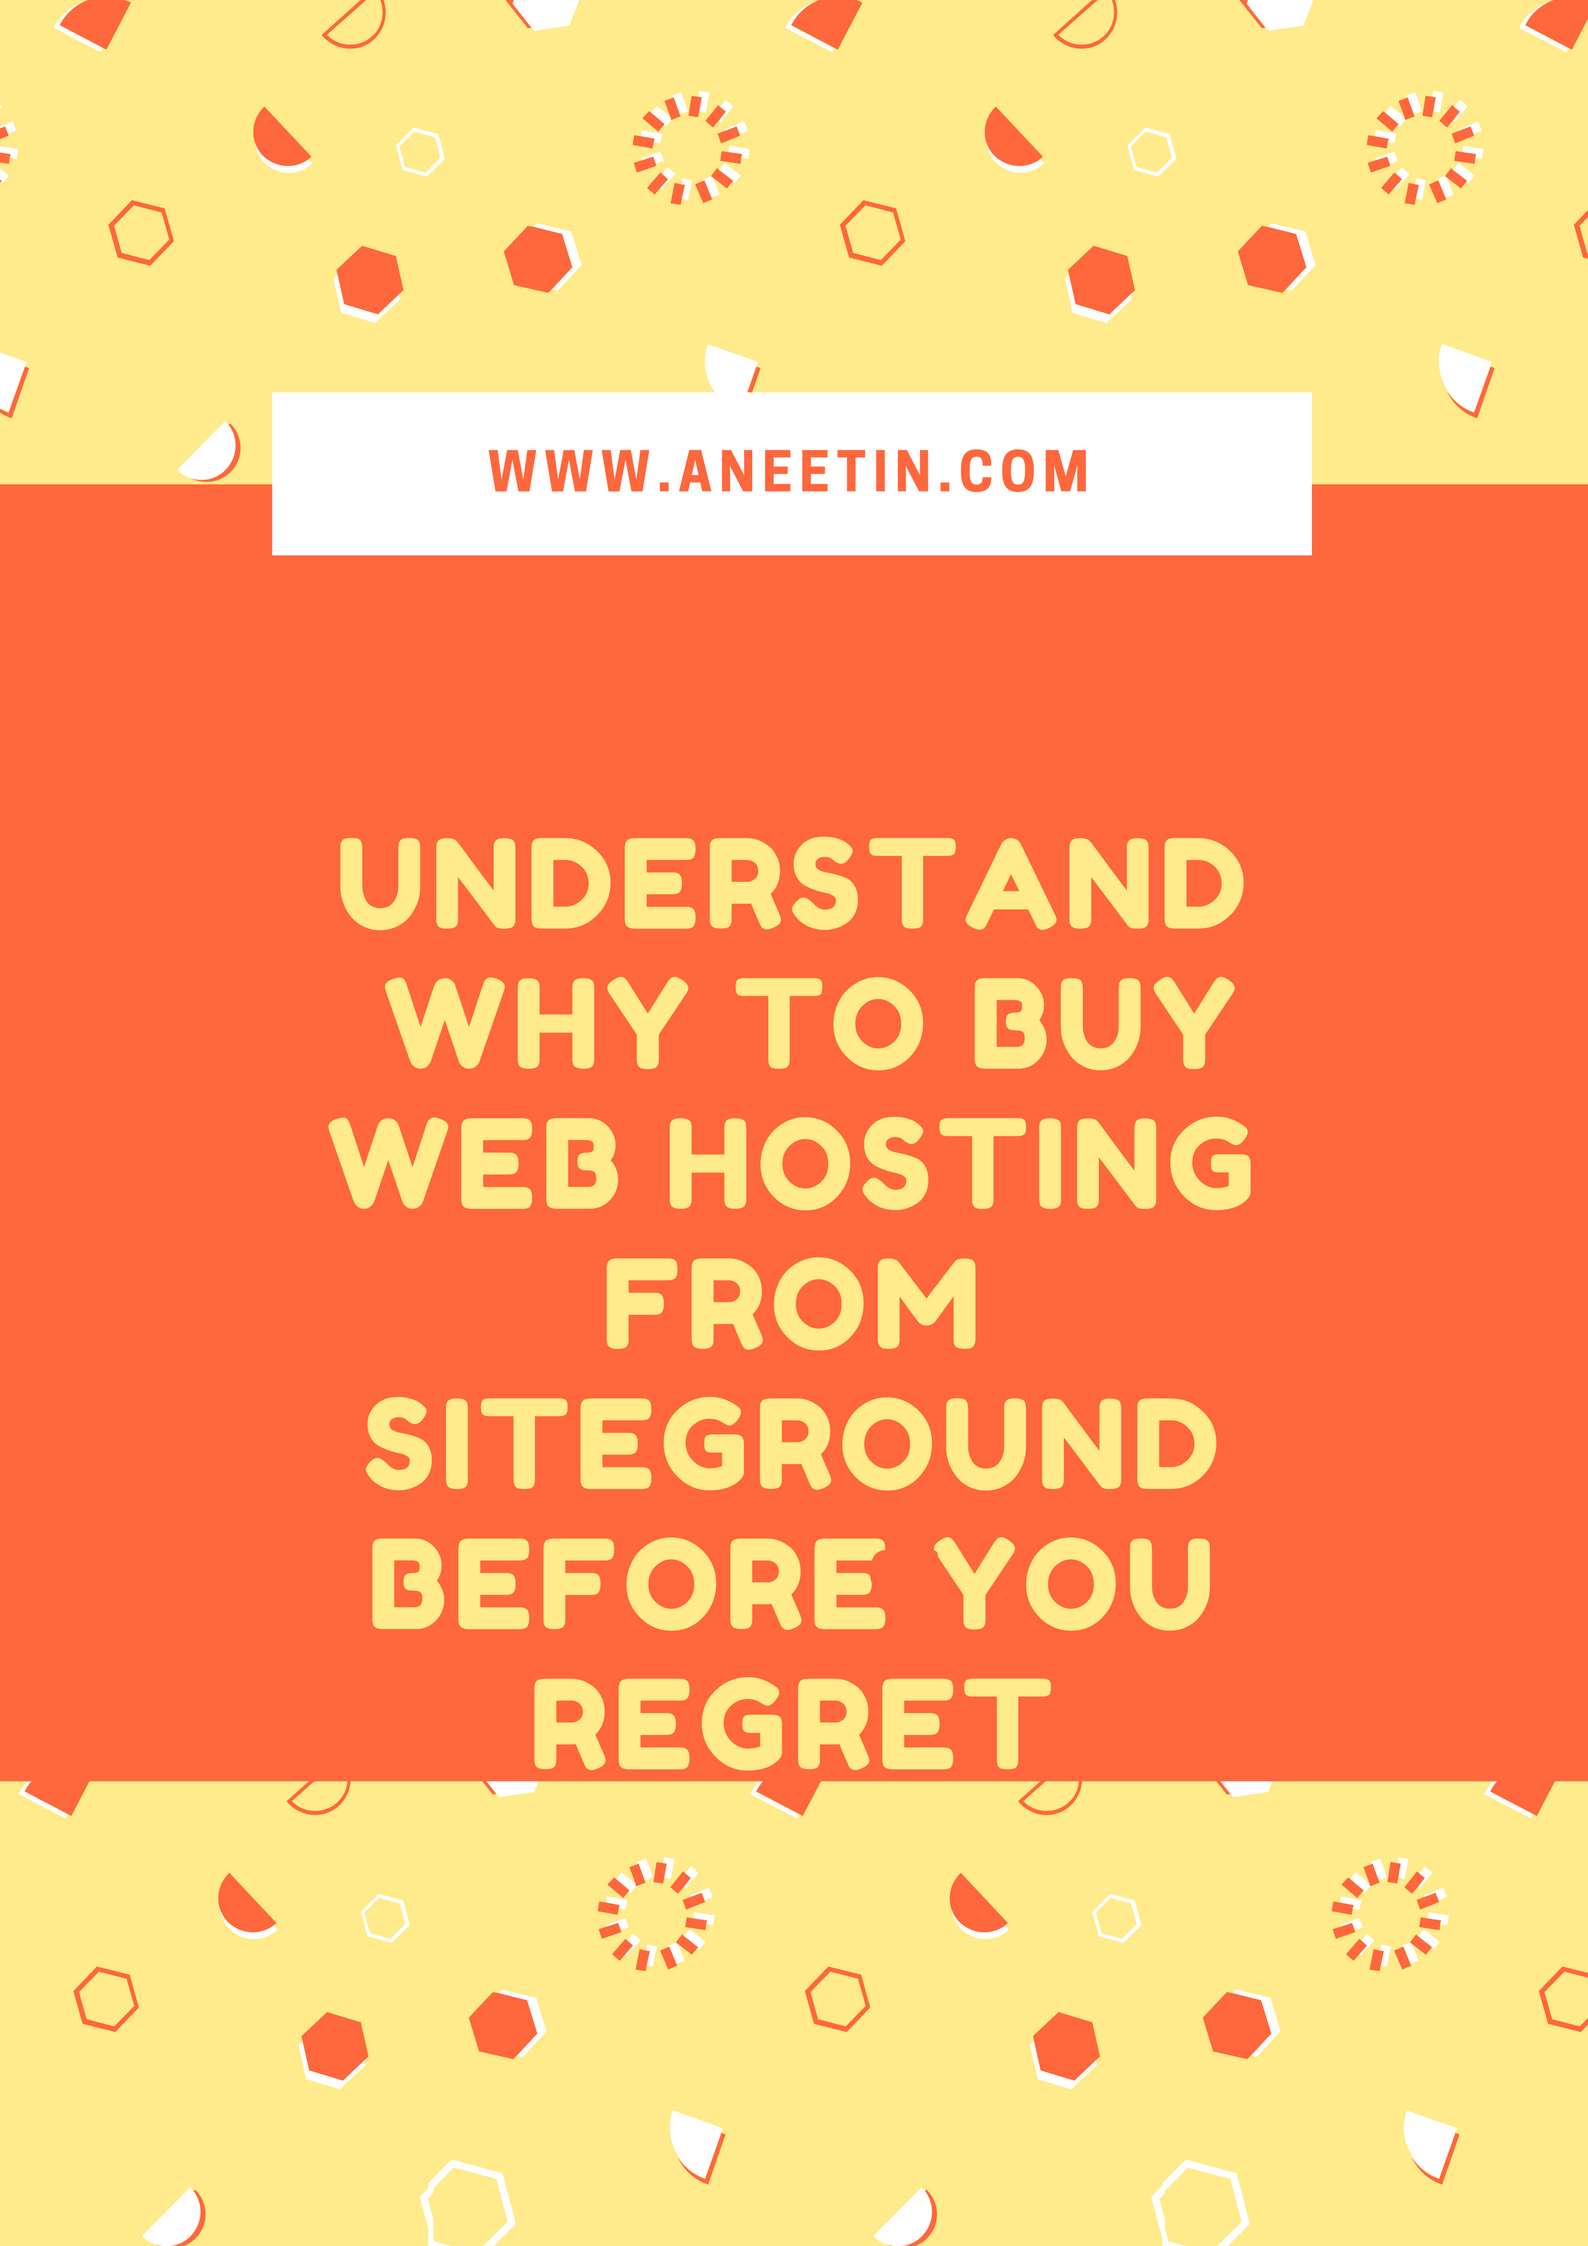 Understand Why To Buy Web Hosting From SiteGround Before You Regret